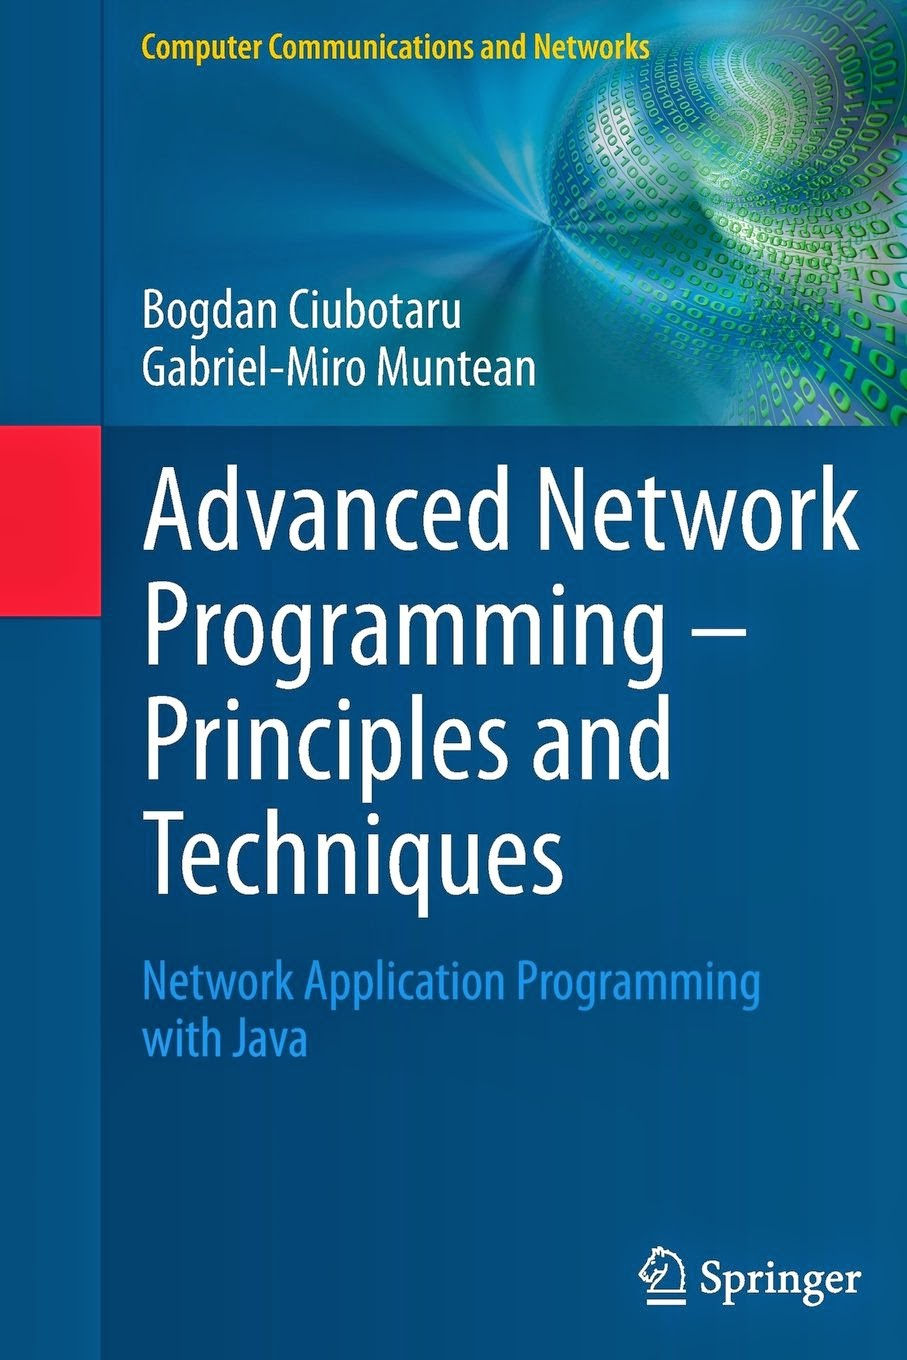 Advanced Network Programming - Principles and Techniques: Network Application Programming with Java (Computer Communications and Networks)